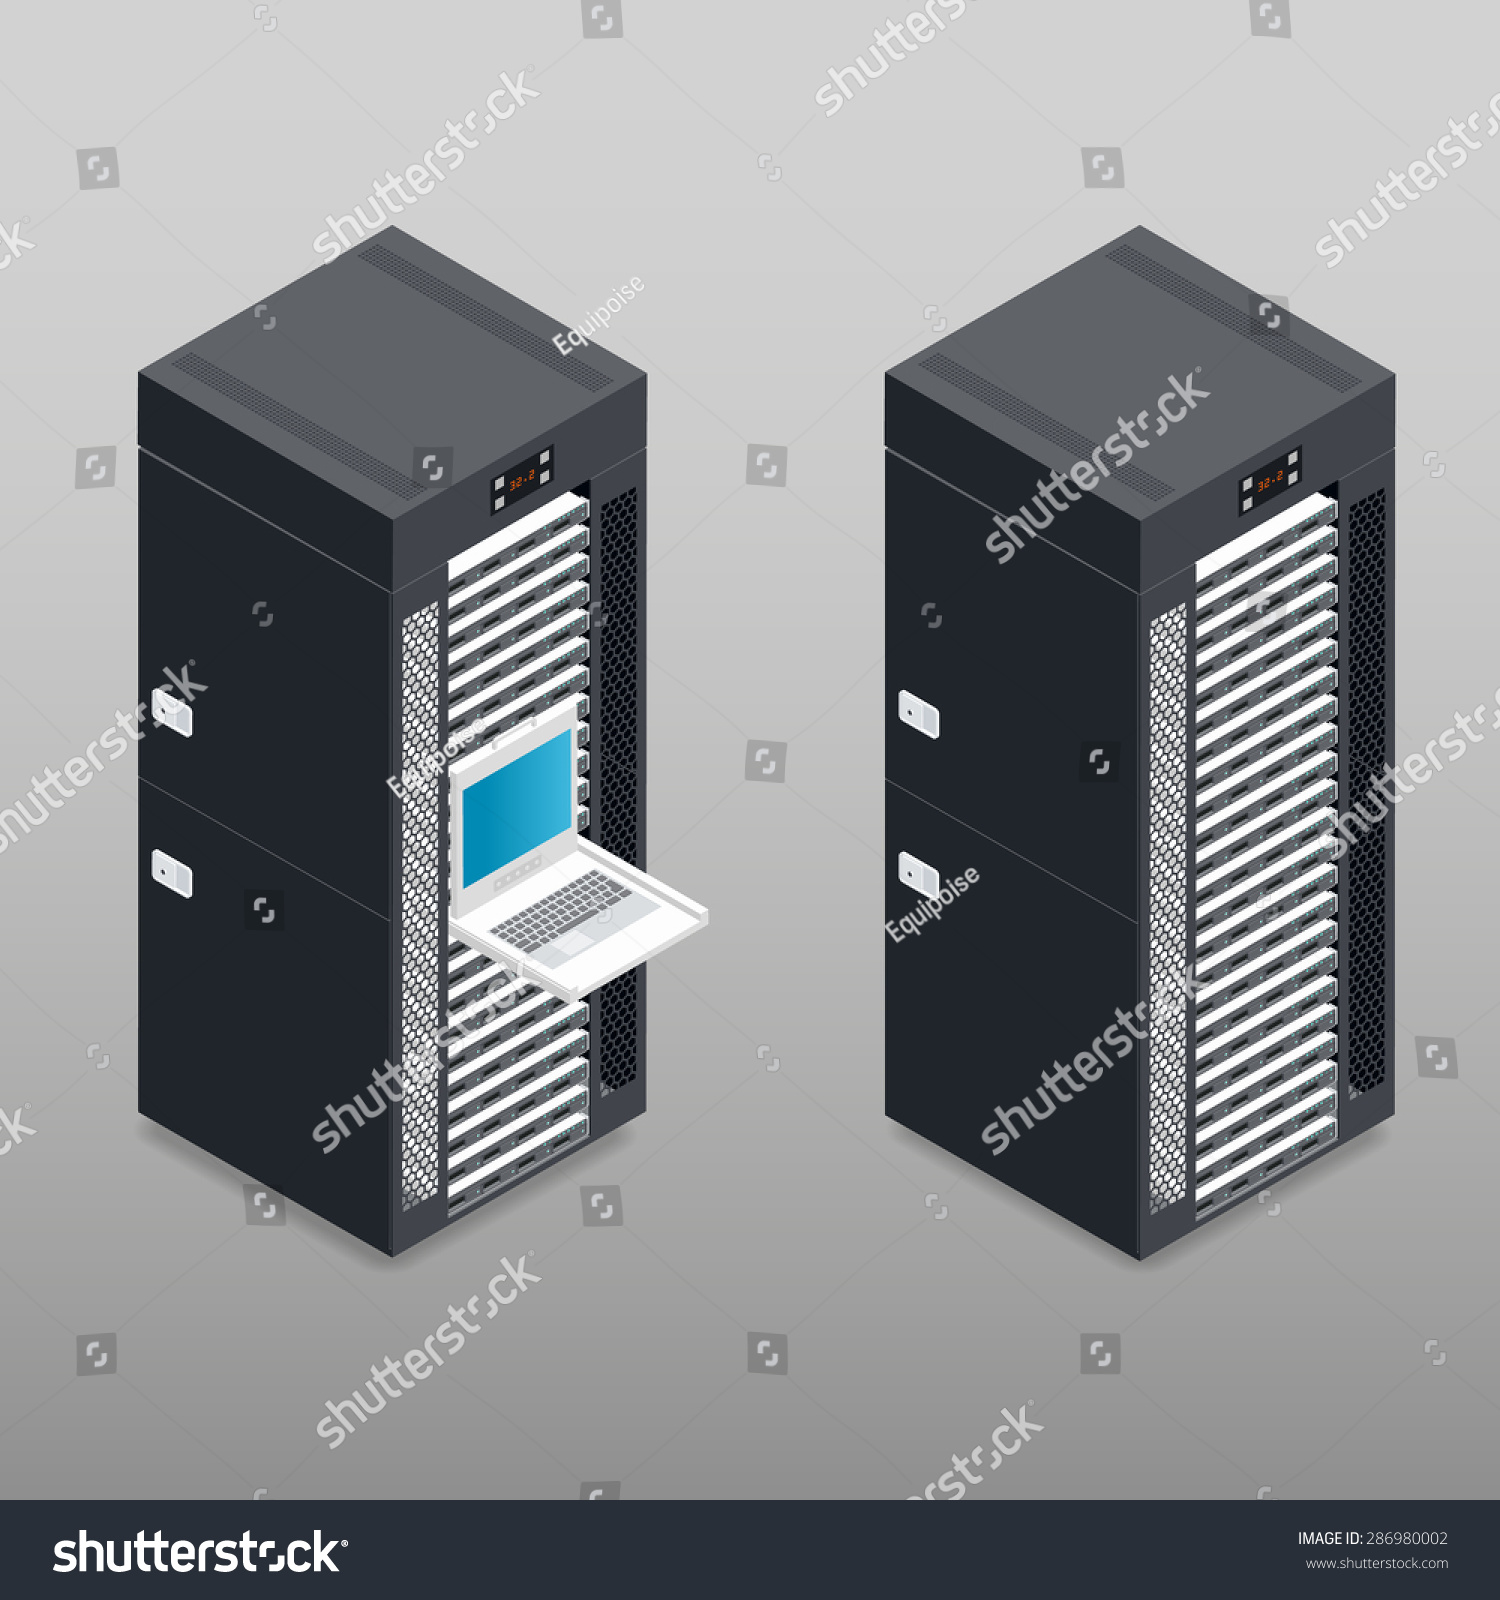 server tower rack detailed isometric icon stock vector (royalty free